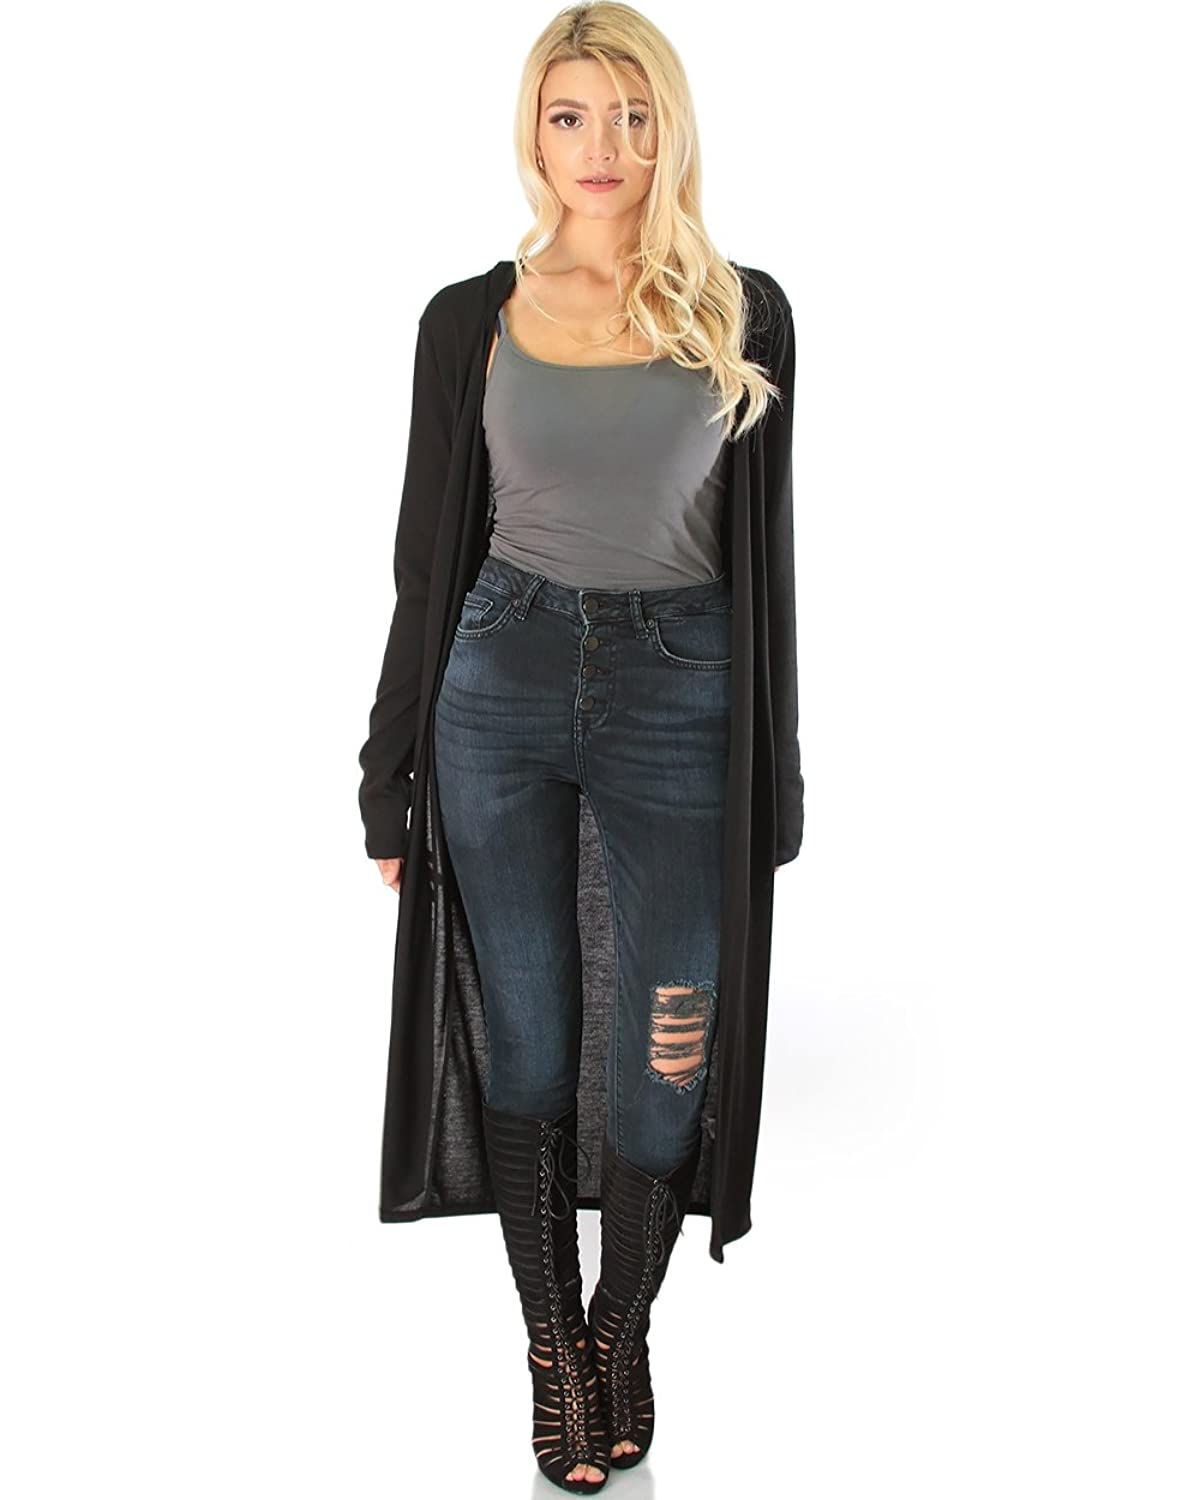 Lyss Loo Long Line Hooded Cardigan at Amazon Women's Clothing store: